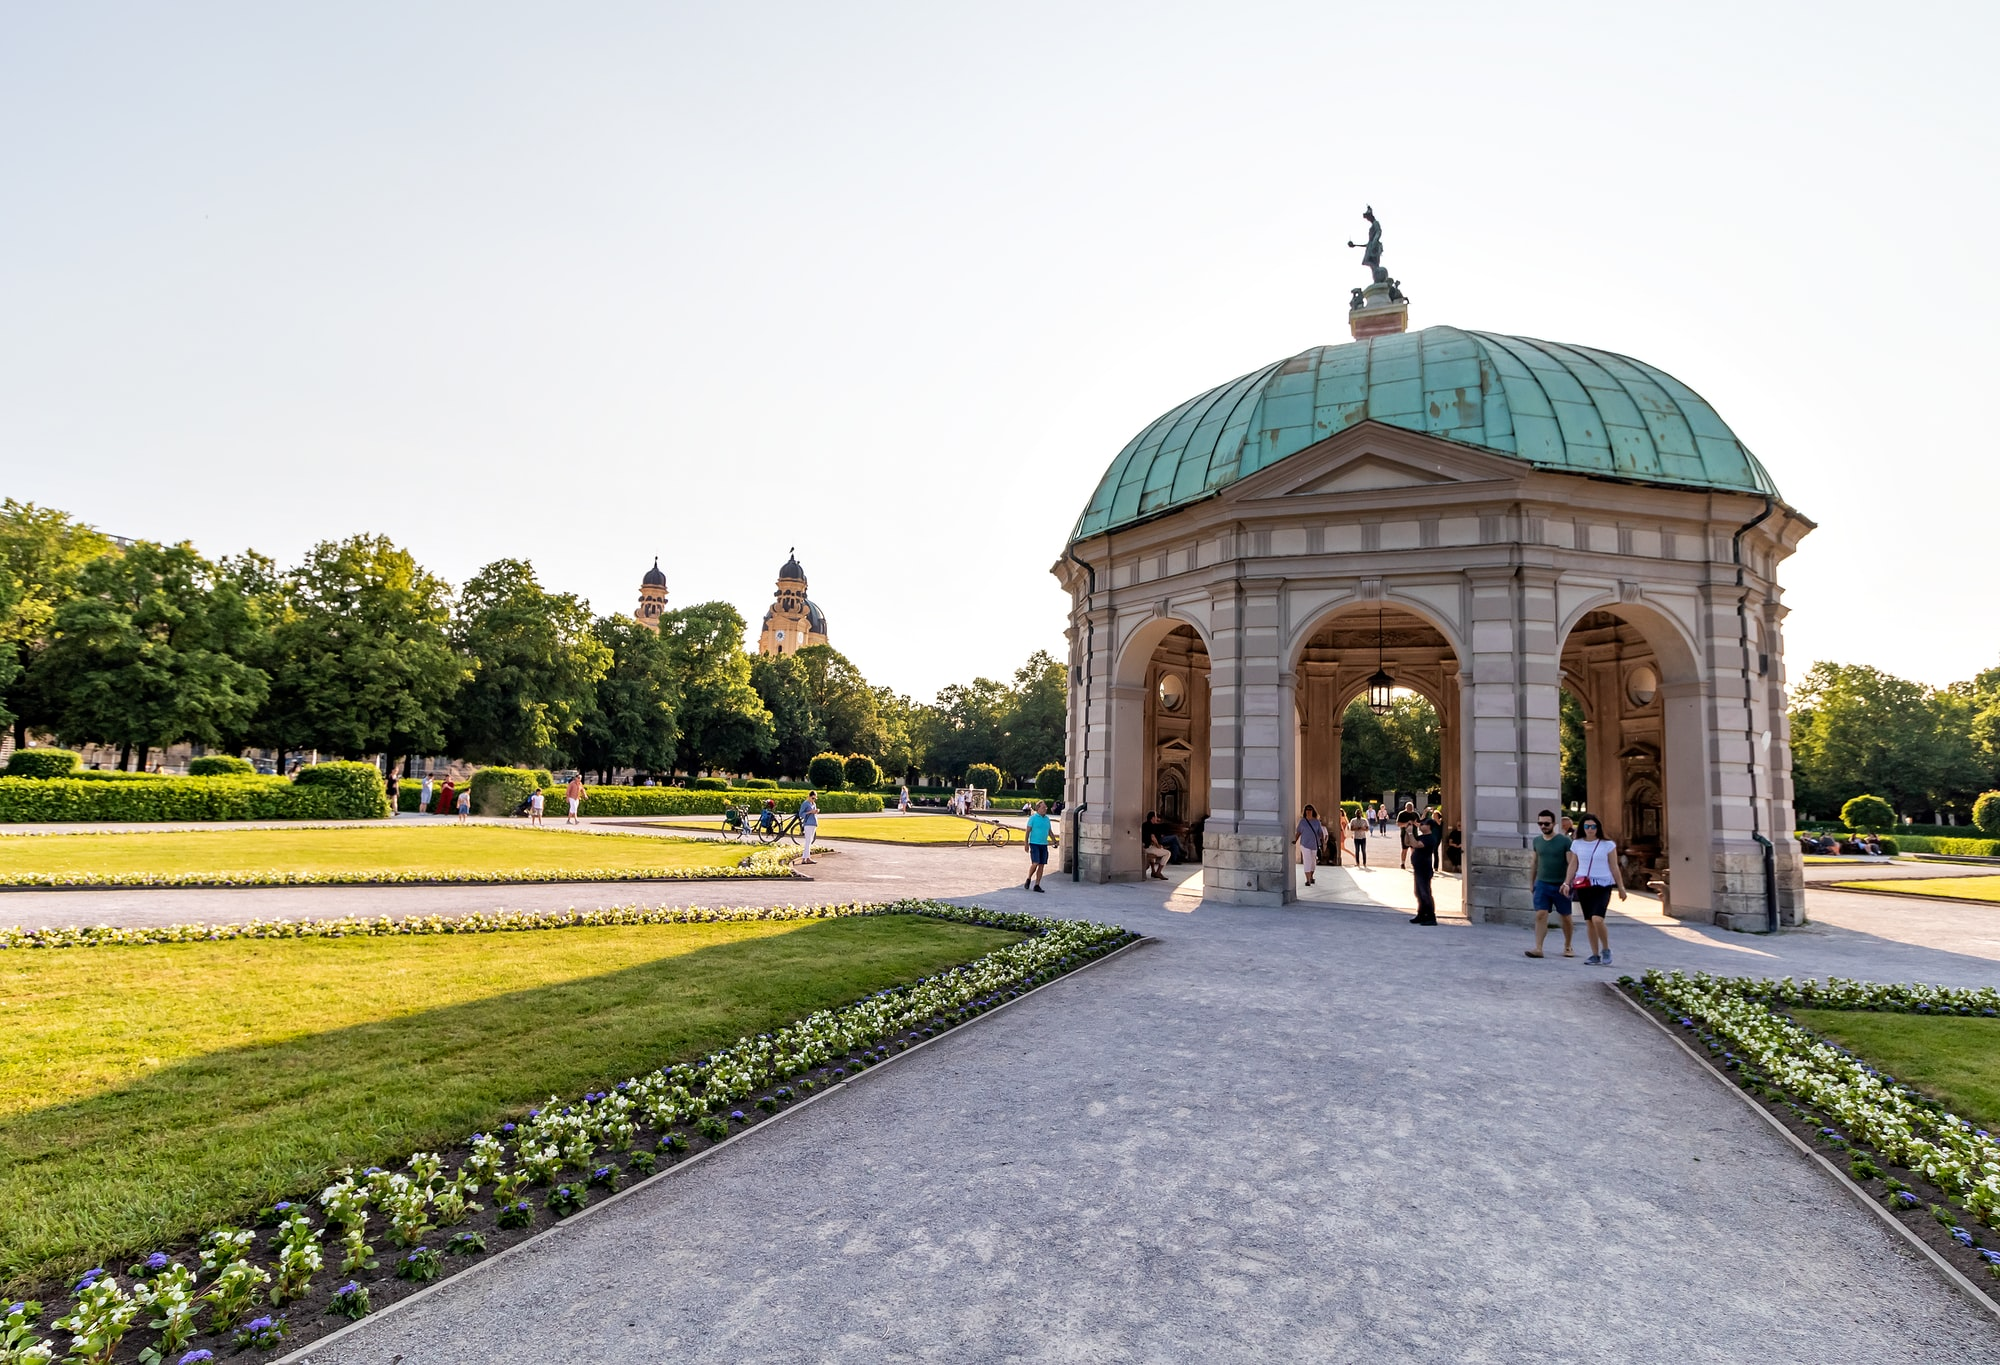 Horgarten - Court Garden - Diana Temple in Munich